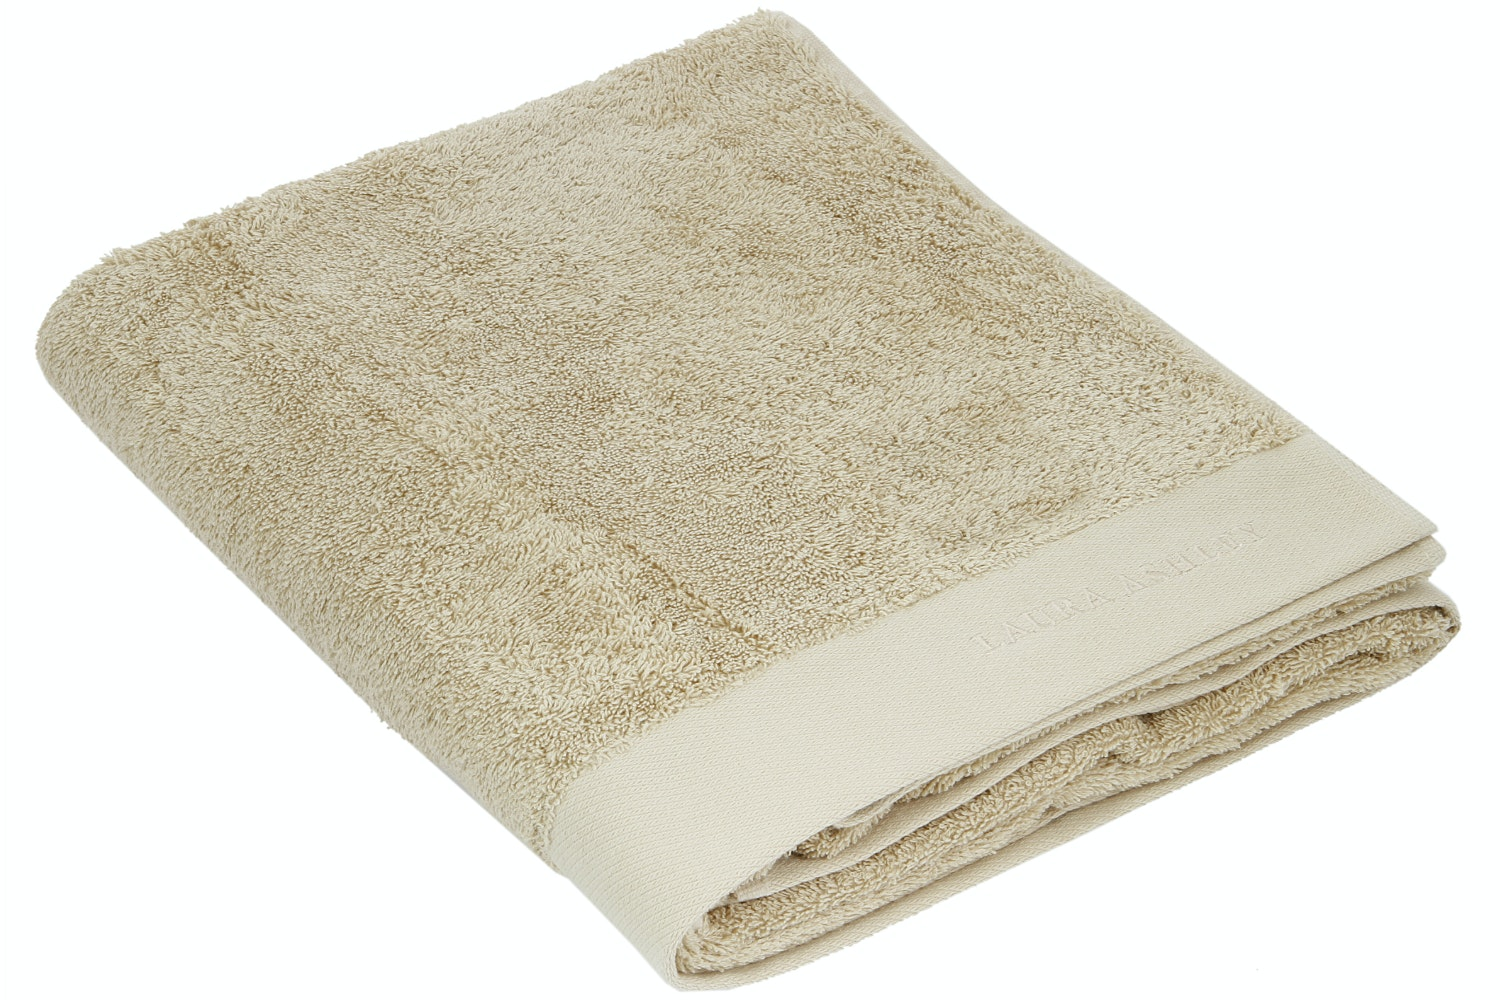 Laura Ashley Bath Towel